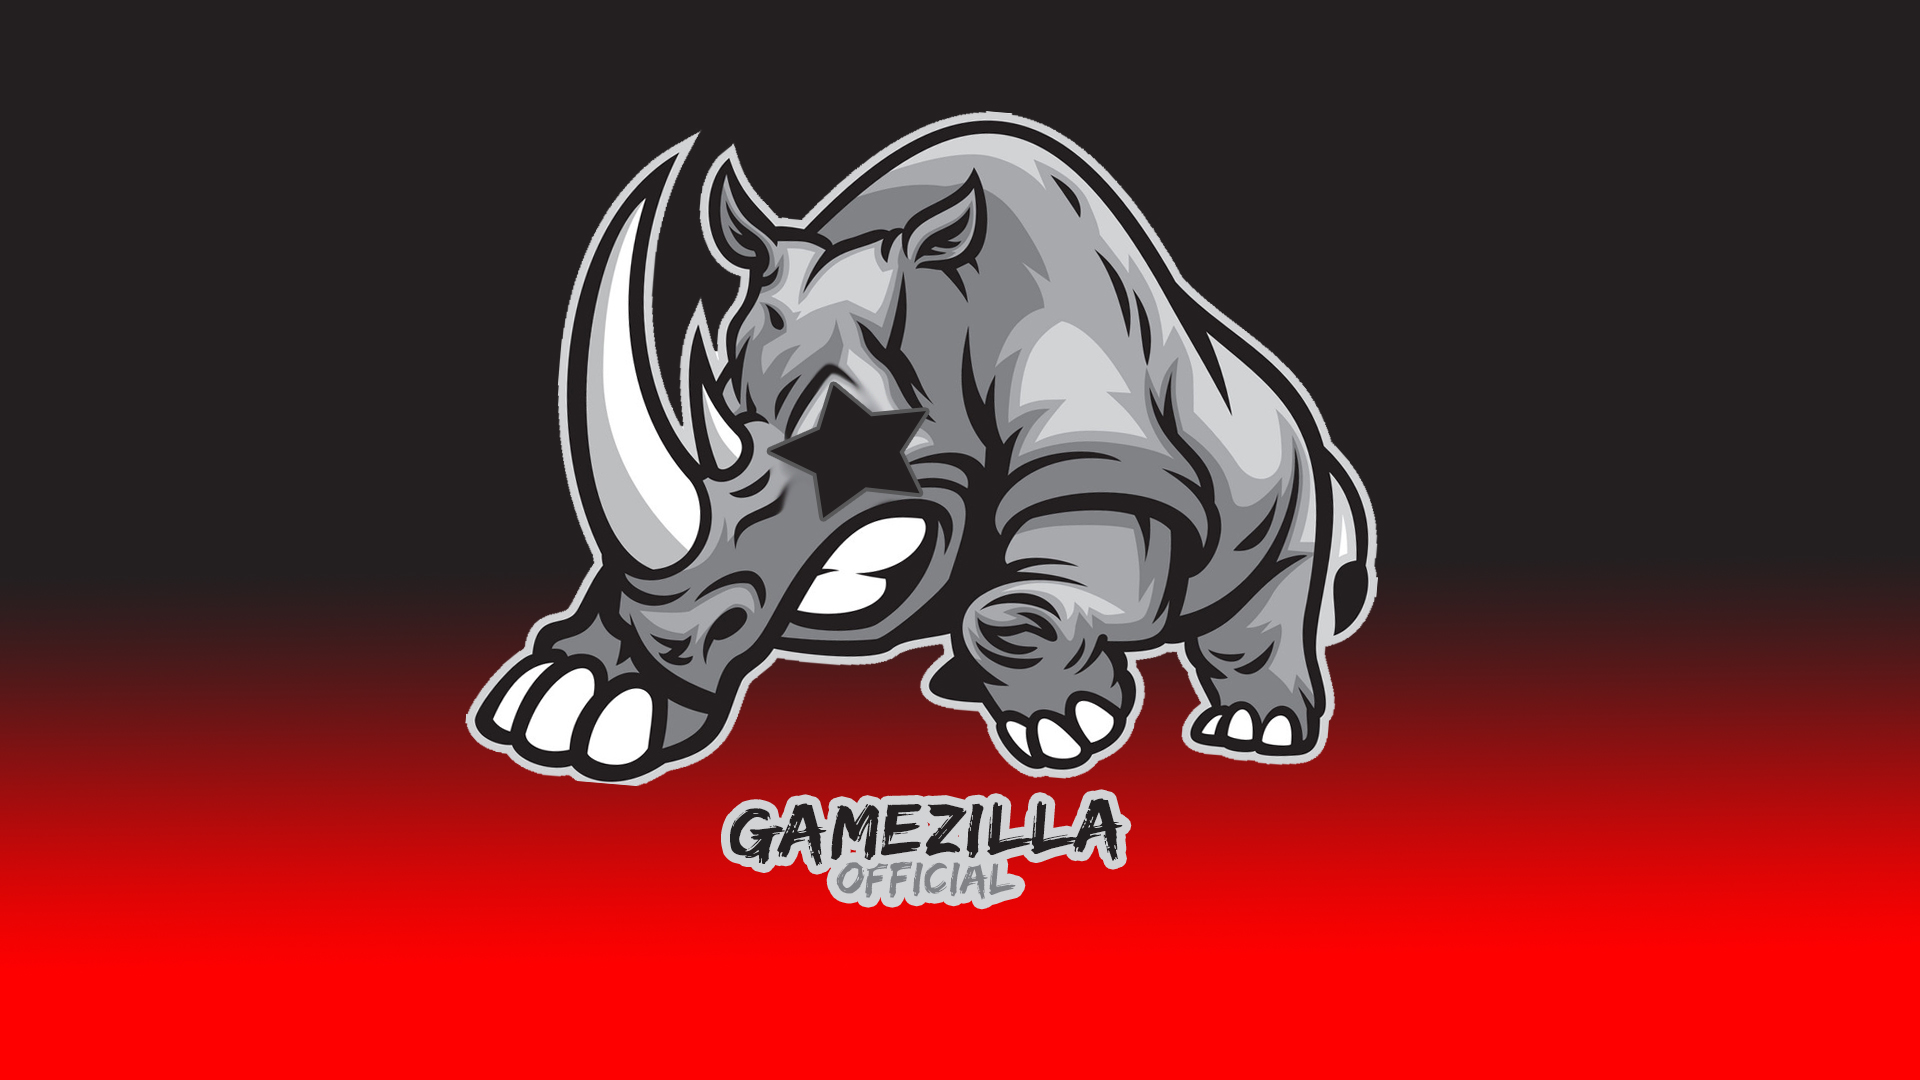 Gamezilla Official